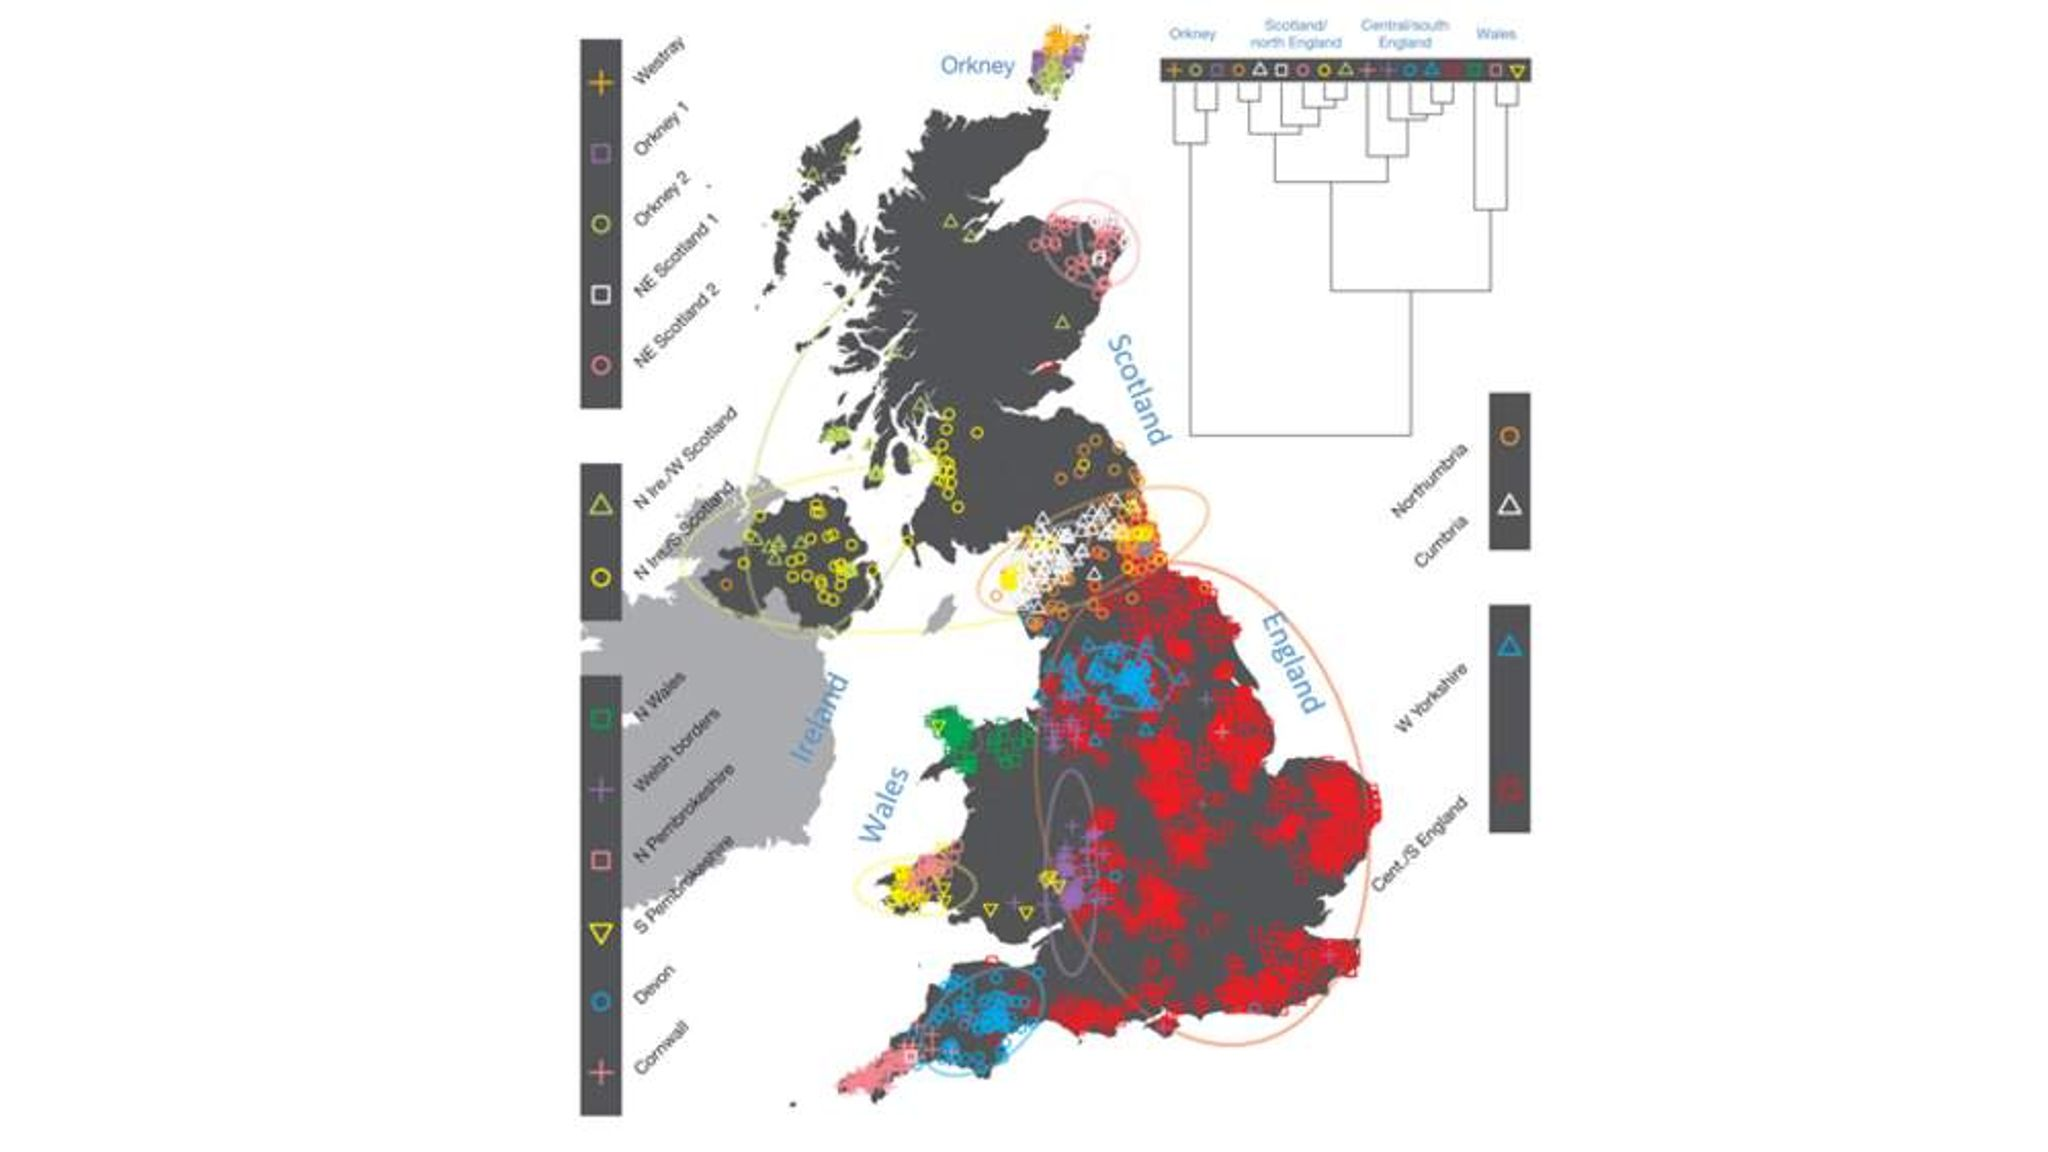 Where Do We Come From? Britain's DNA Map | UK News | Sky News on